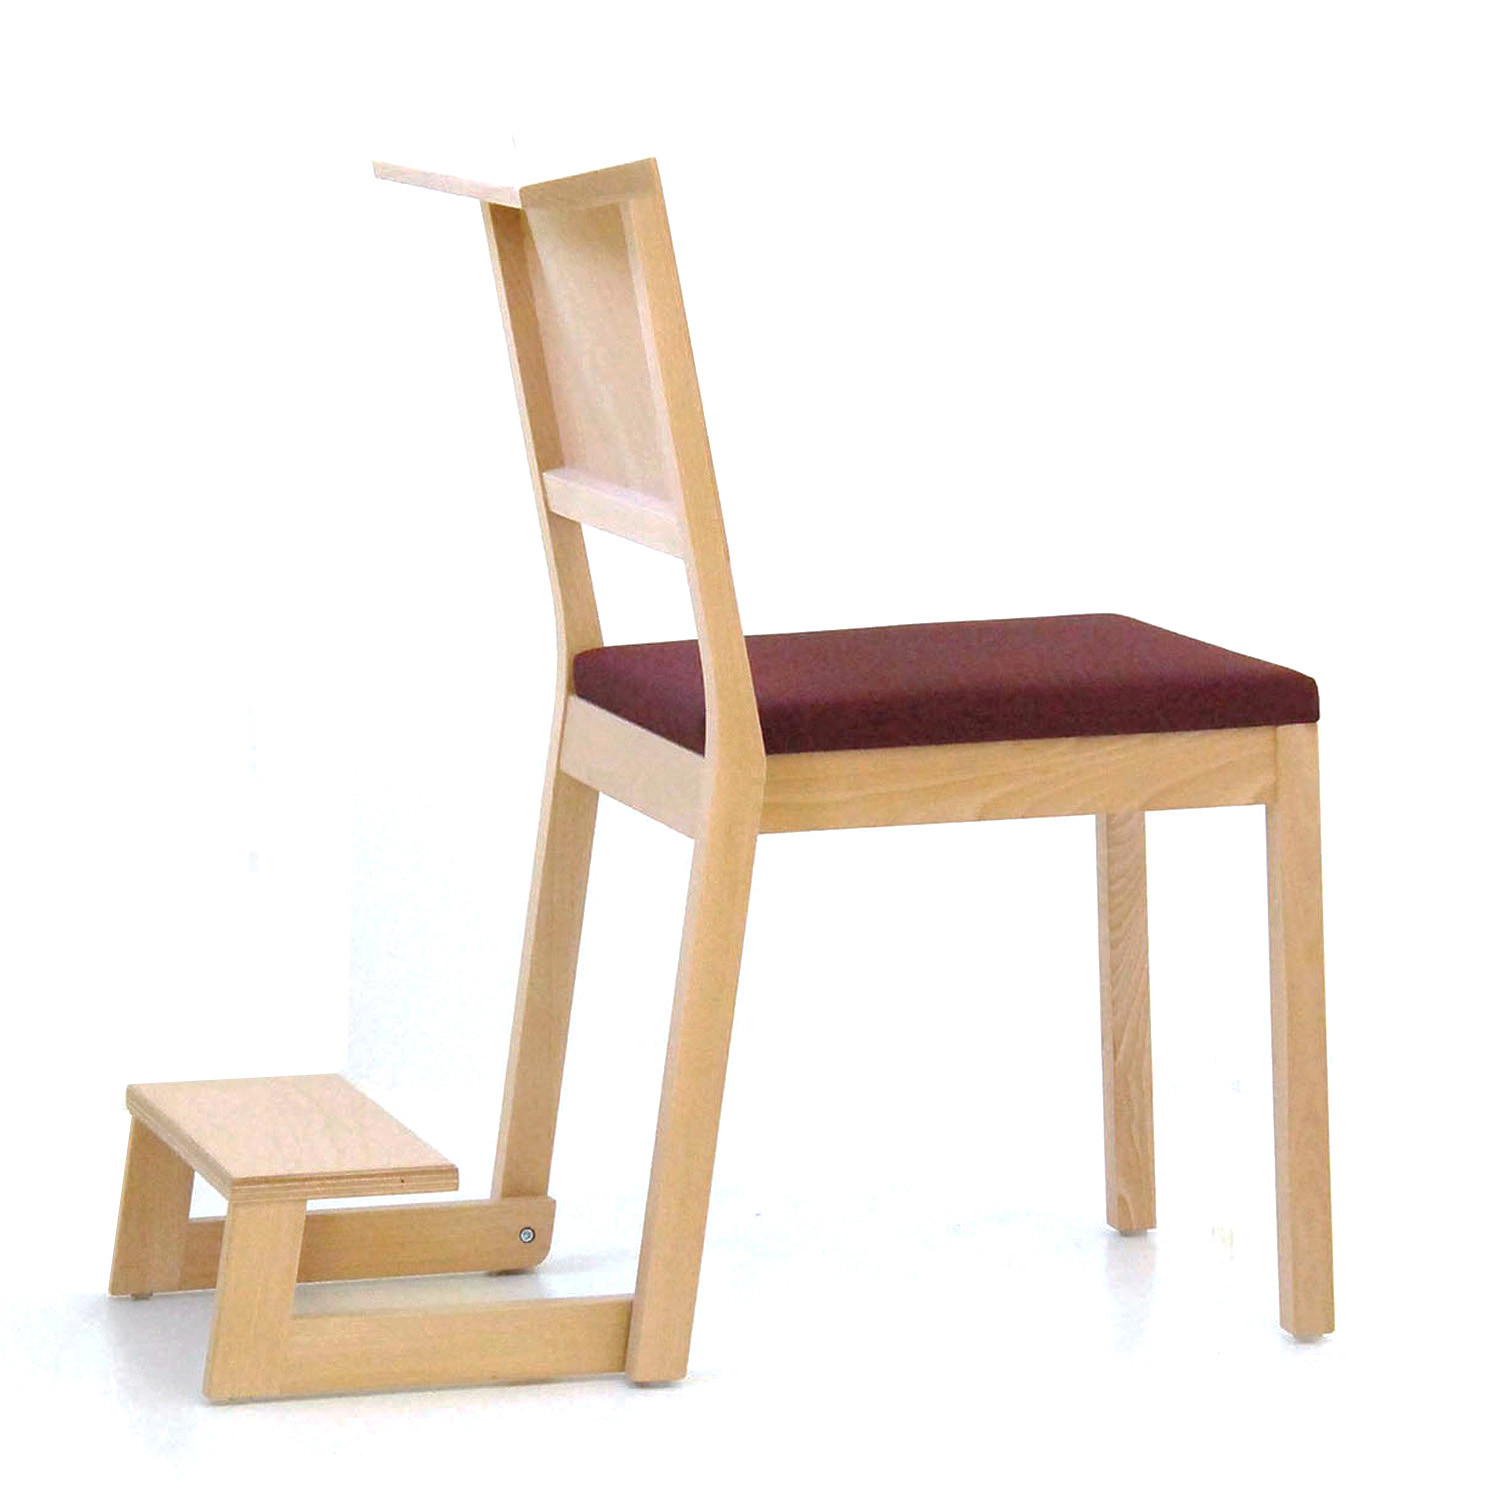 S13 Seating with Prayer Kneeler 6725-100